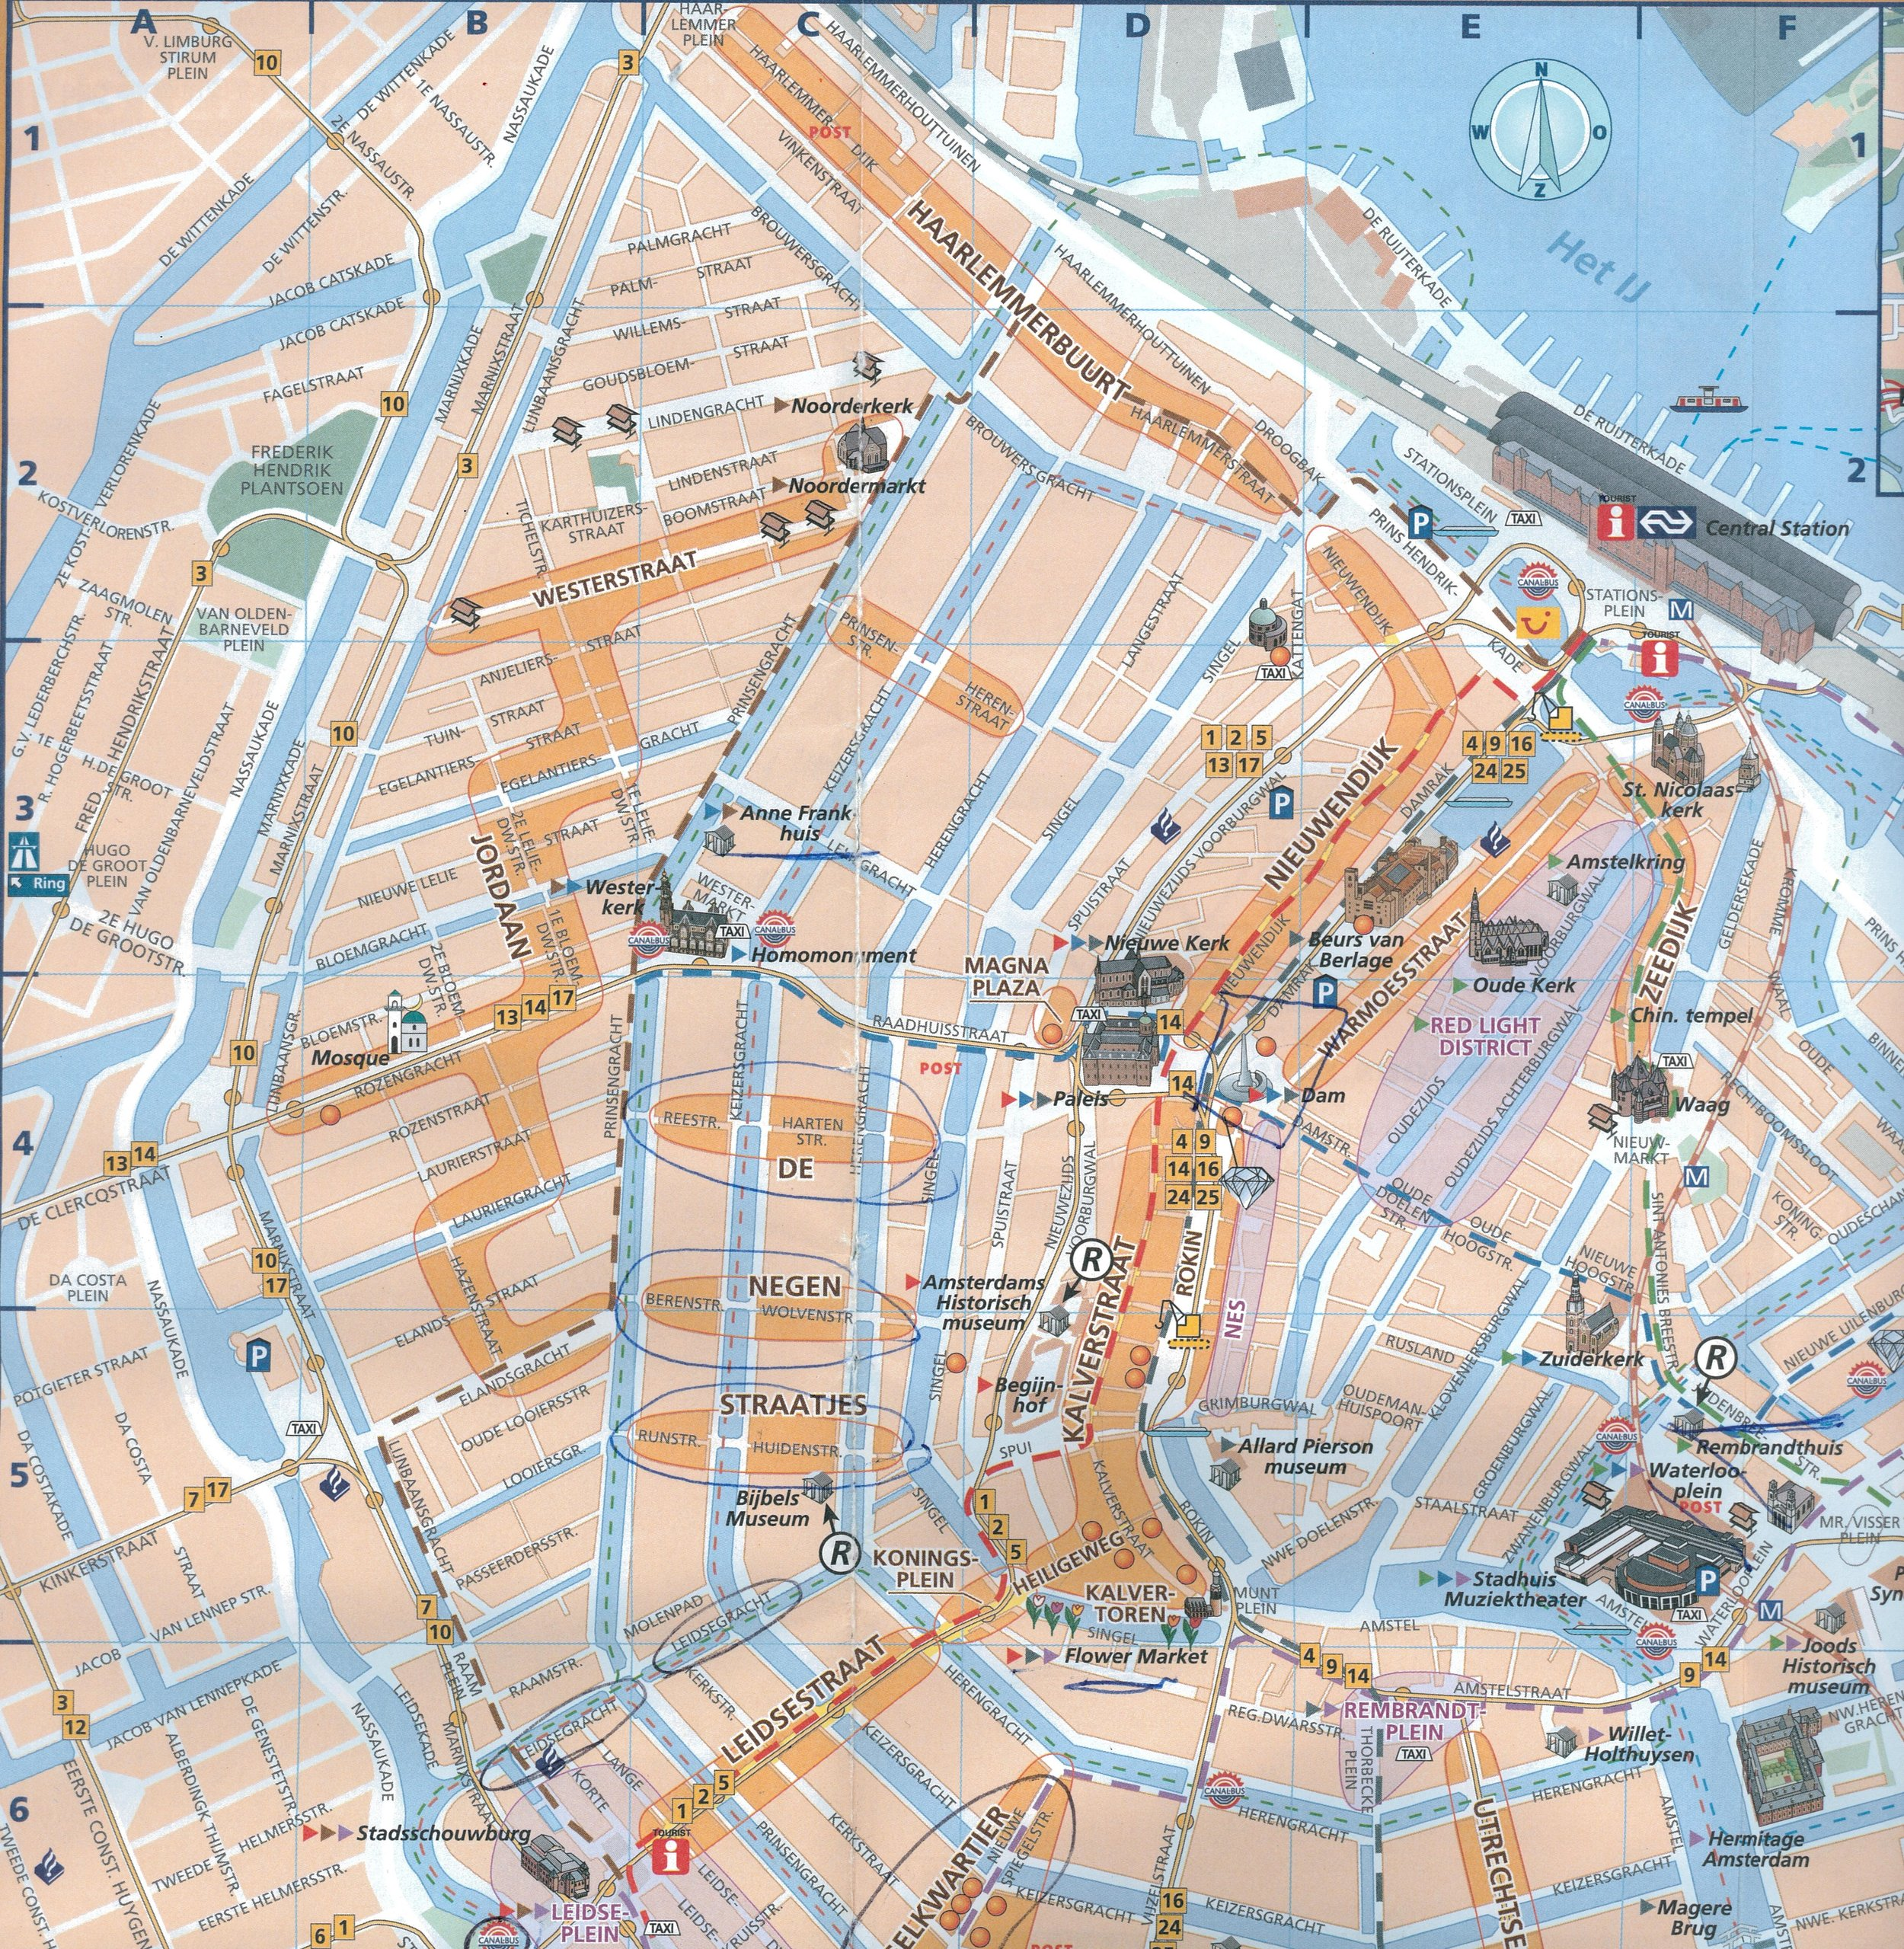 Amsterdam Map.jpeg